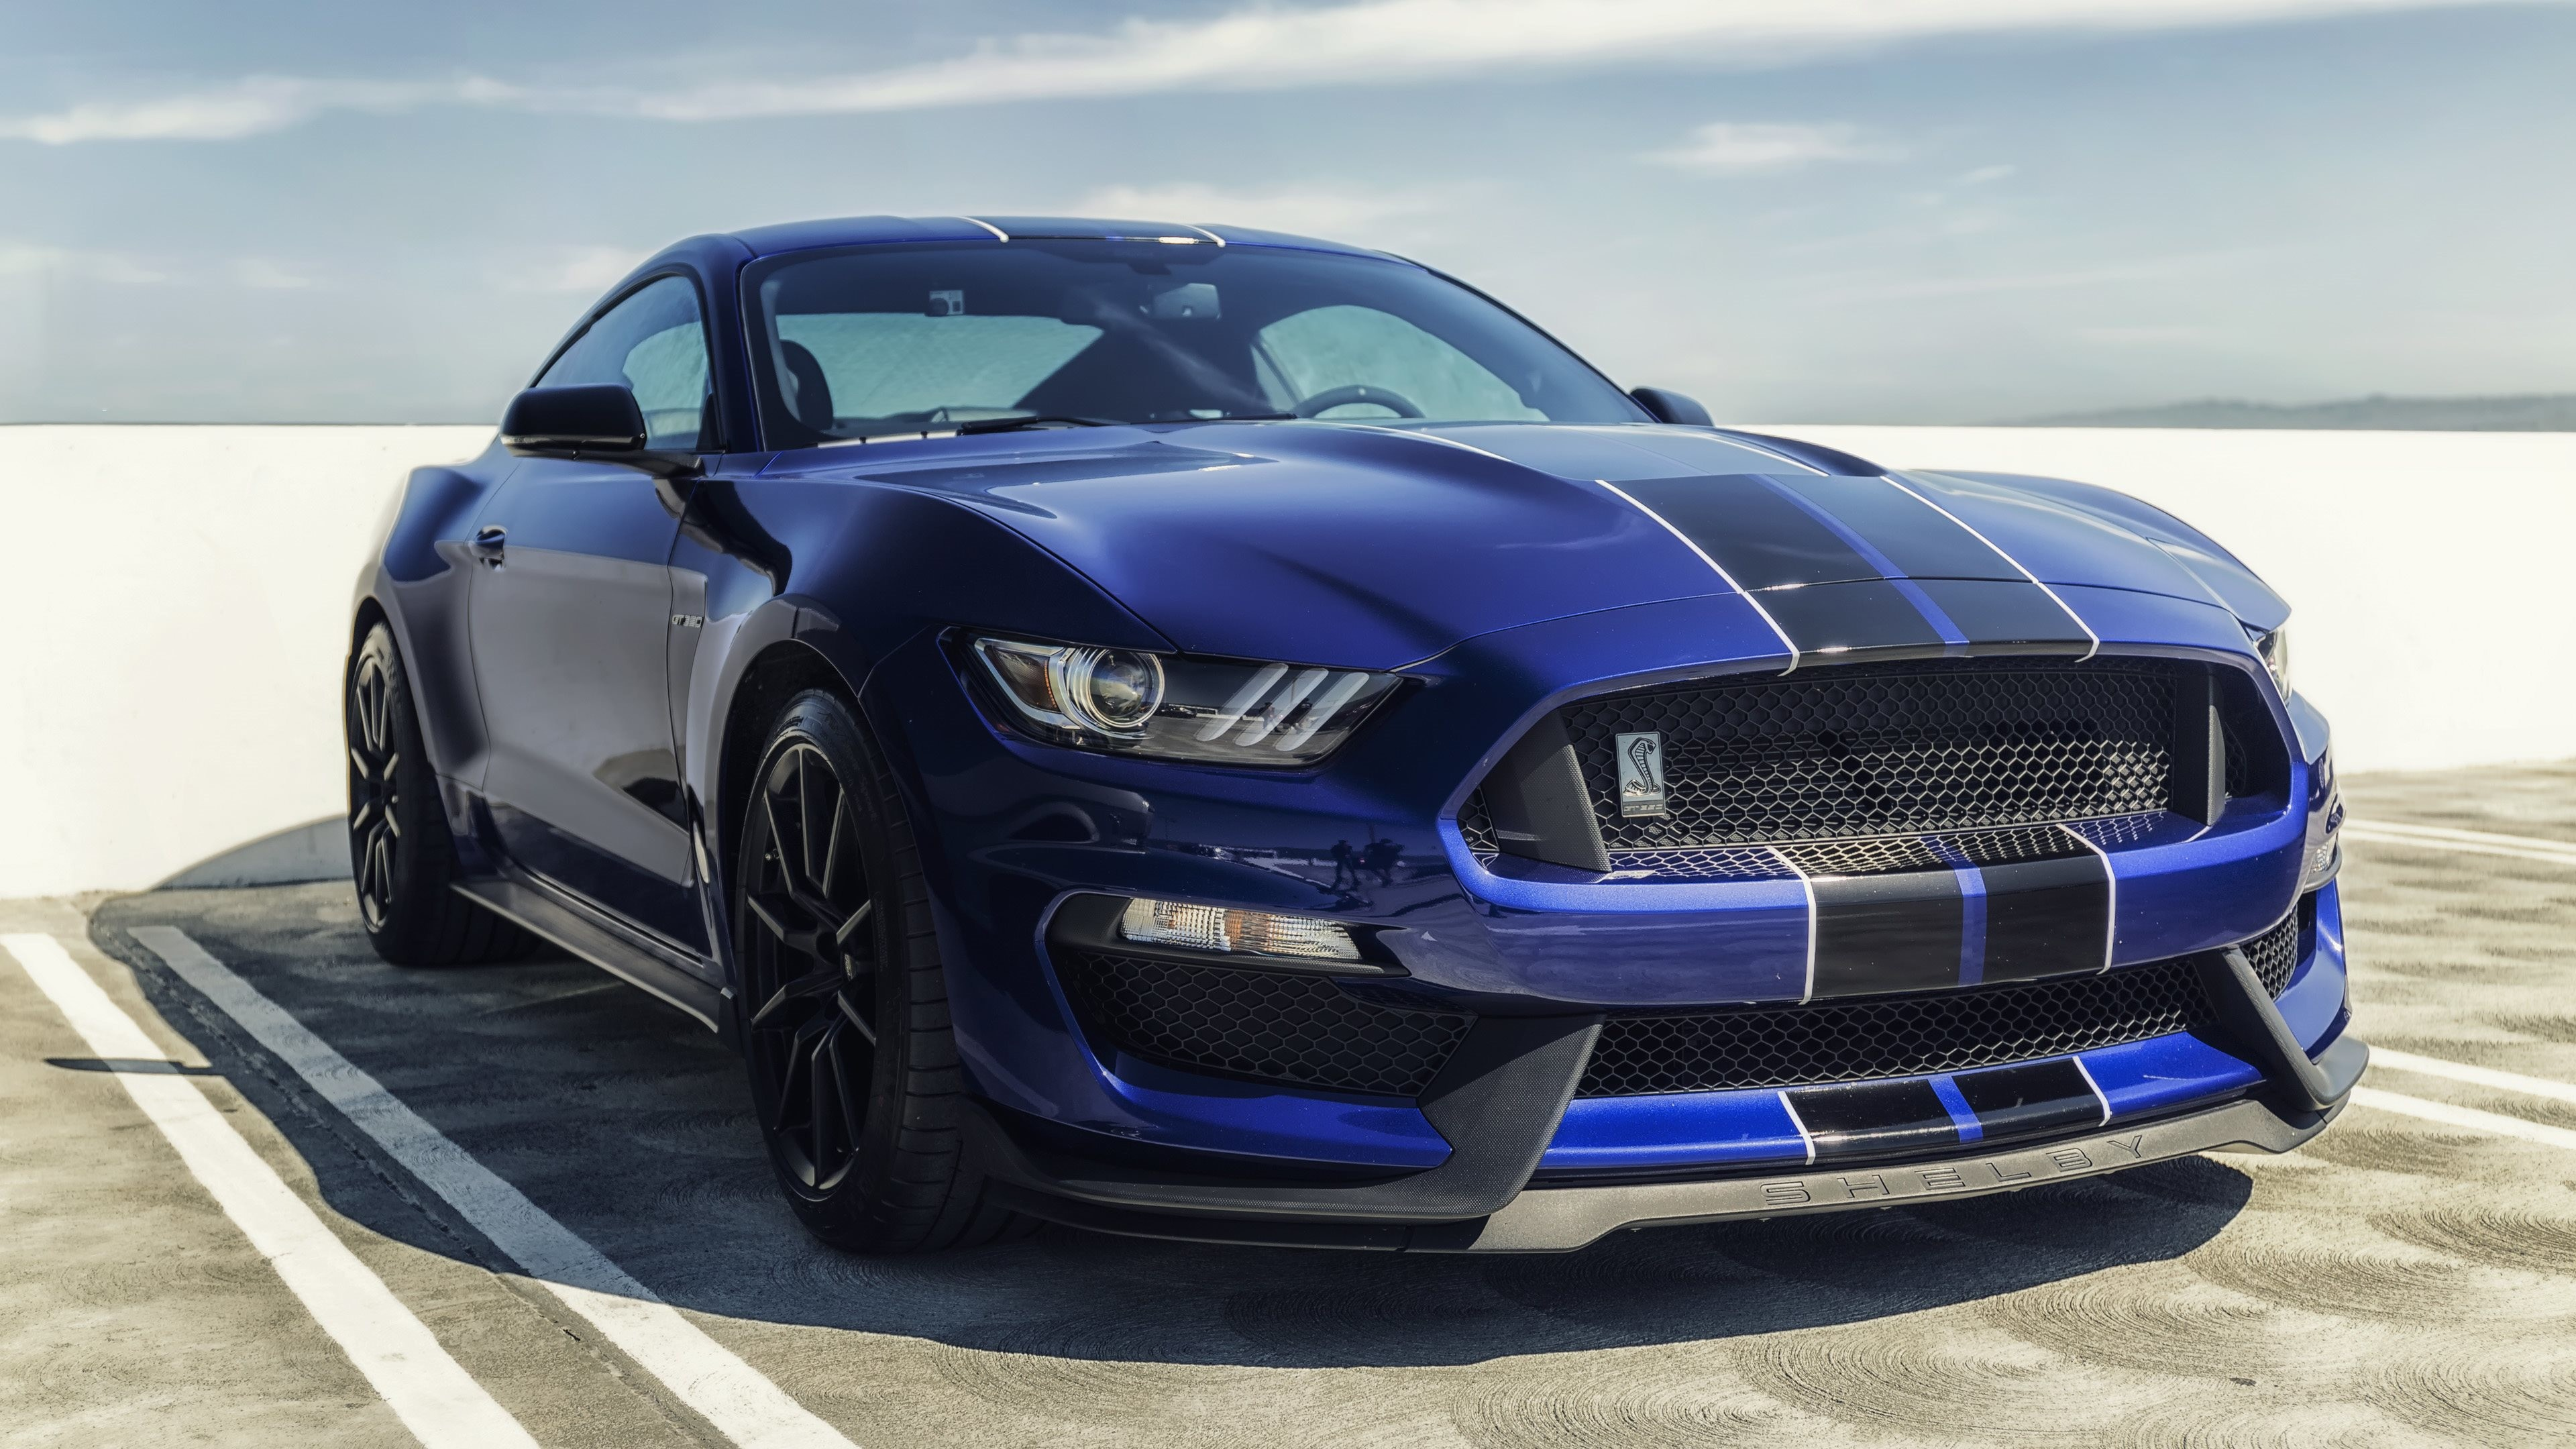 Wallpaper Mobil Sport Mustang: 2018 Ford Mustang Shelby Wallpaper (62+ Pictures